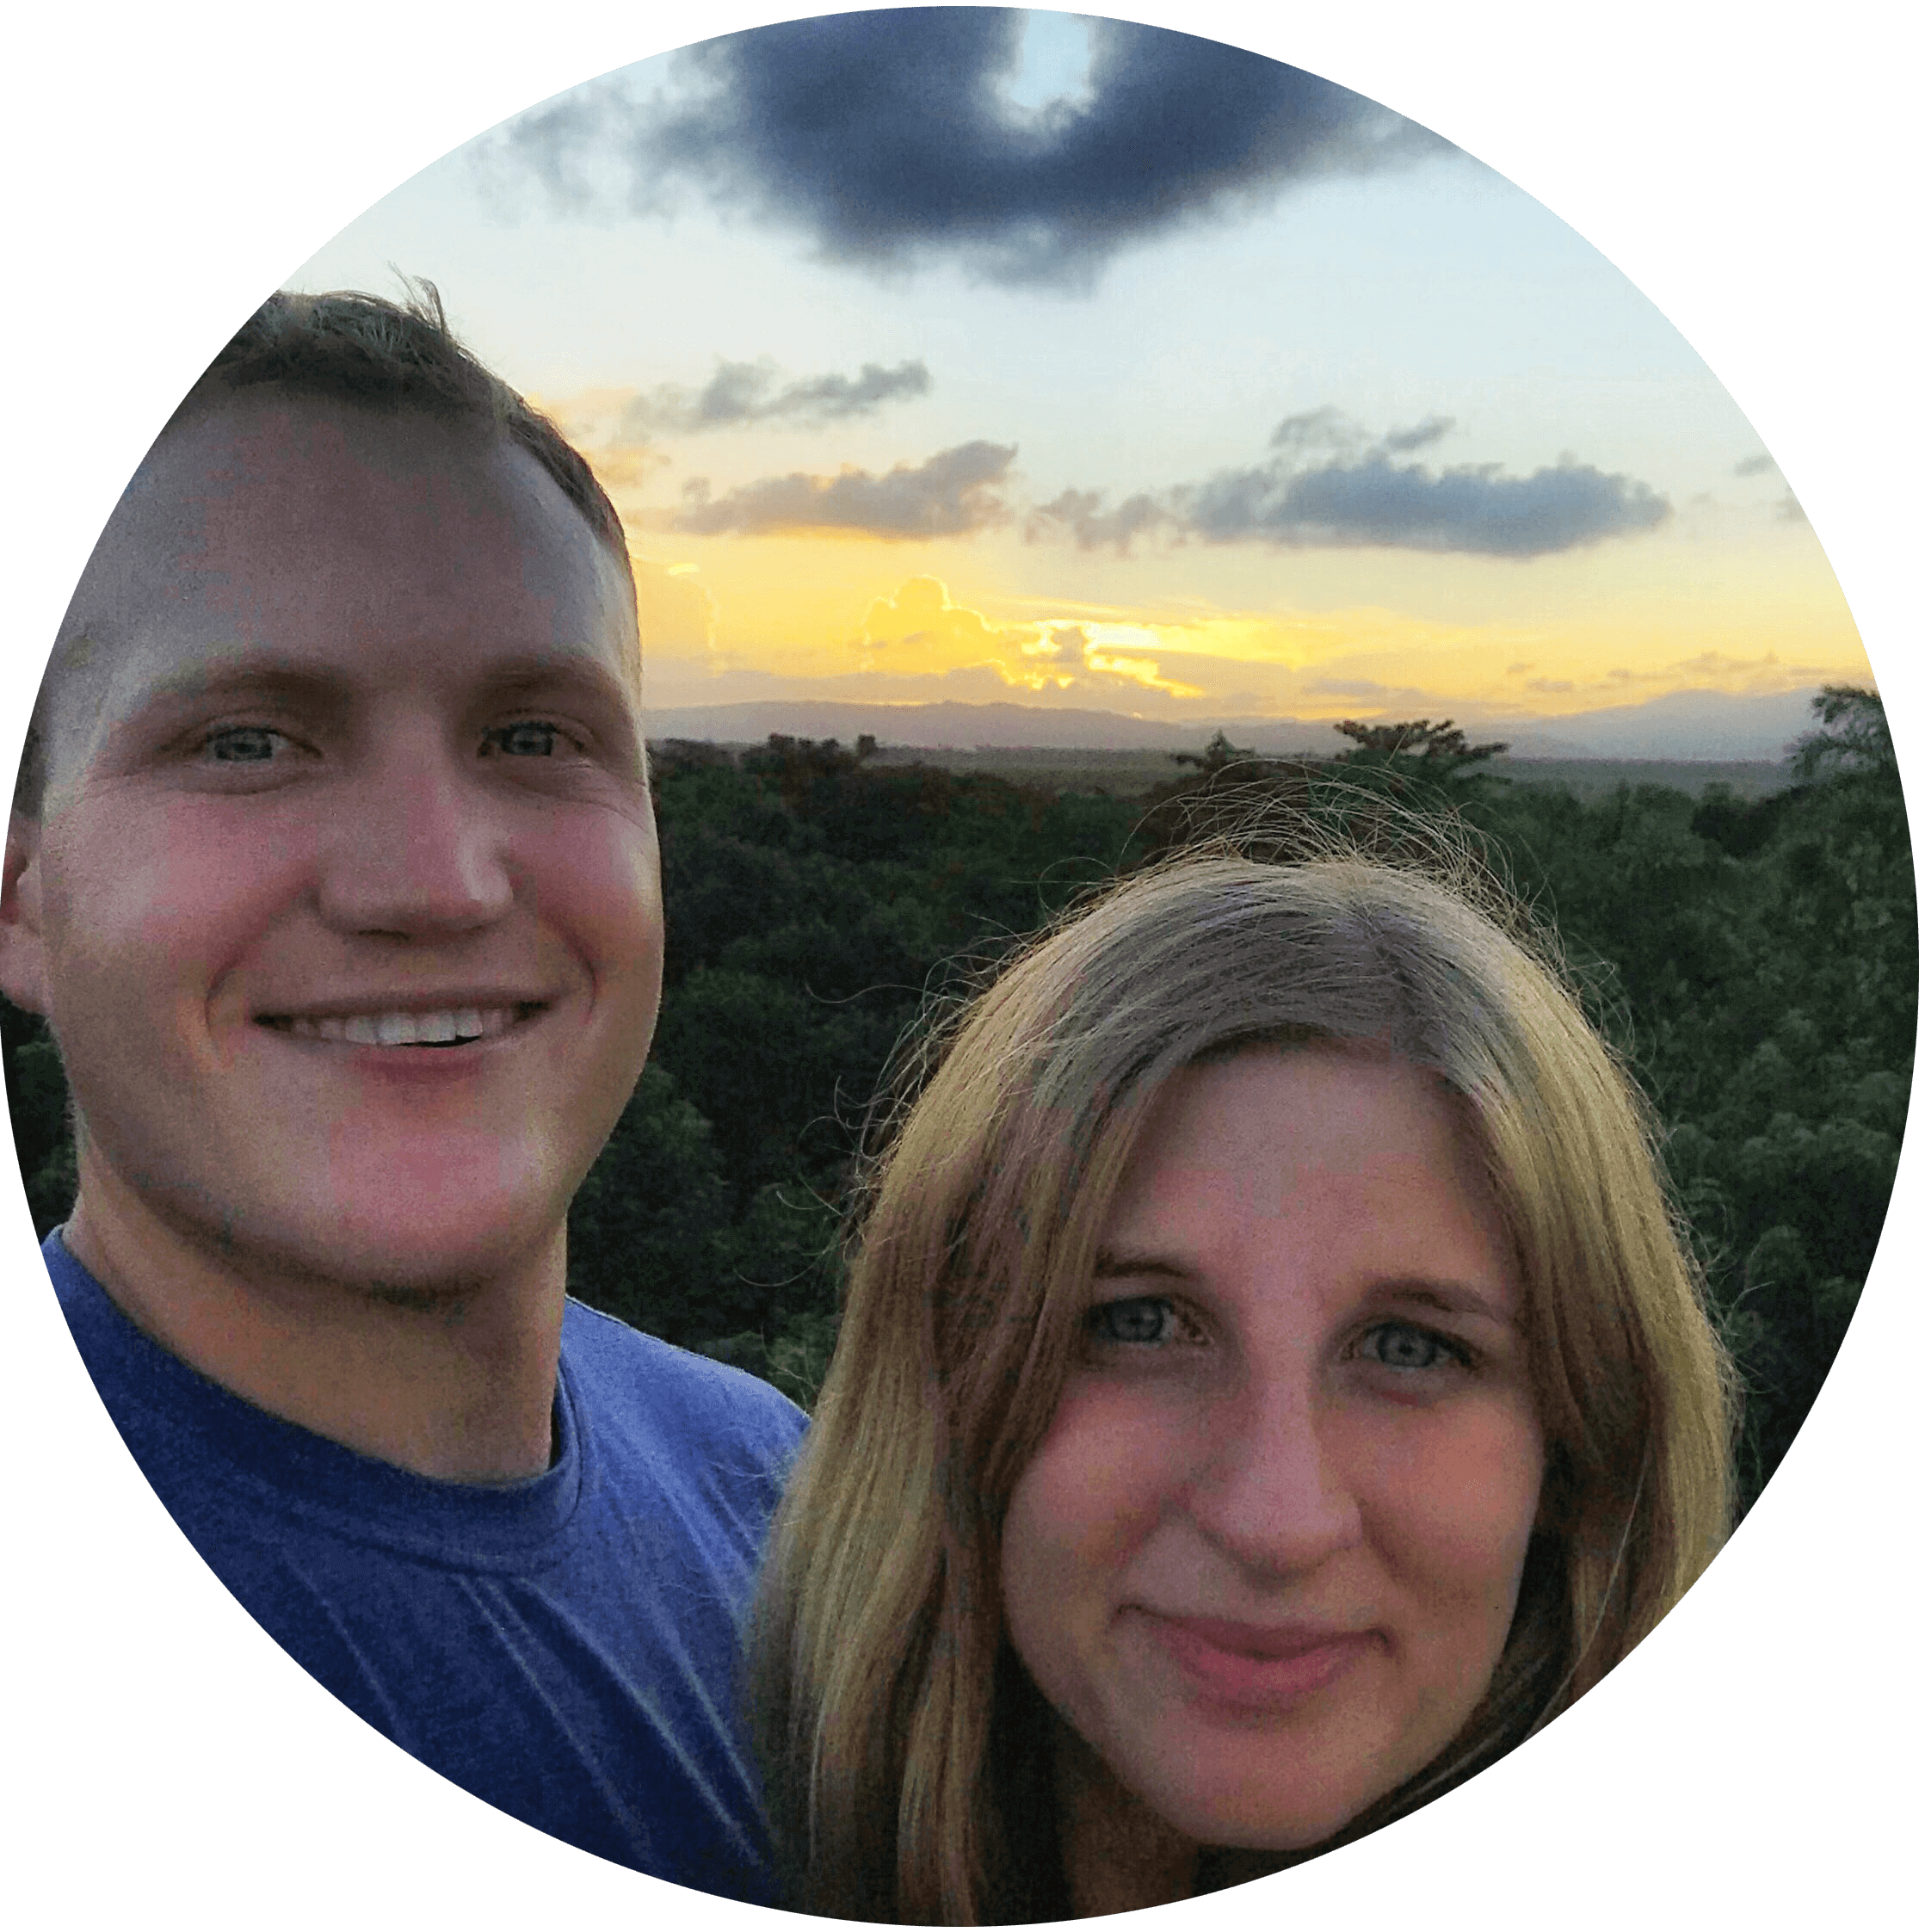 Nicholas Dumke and a female smiling in front of a sunset